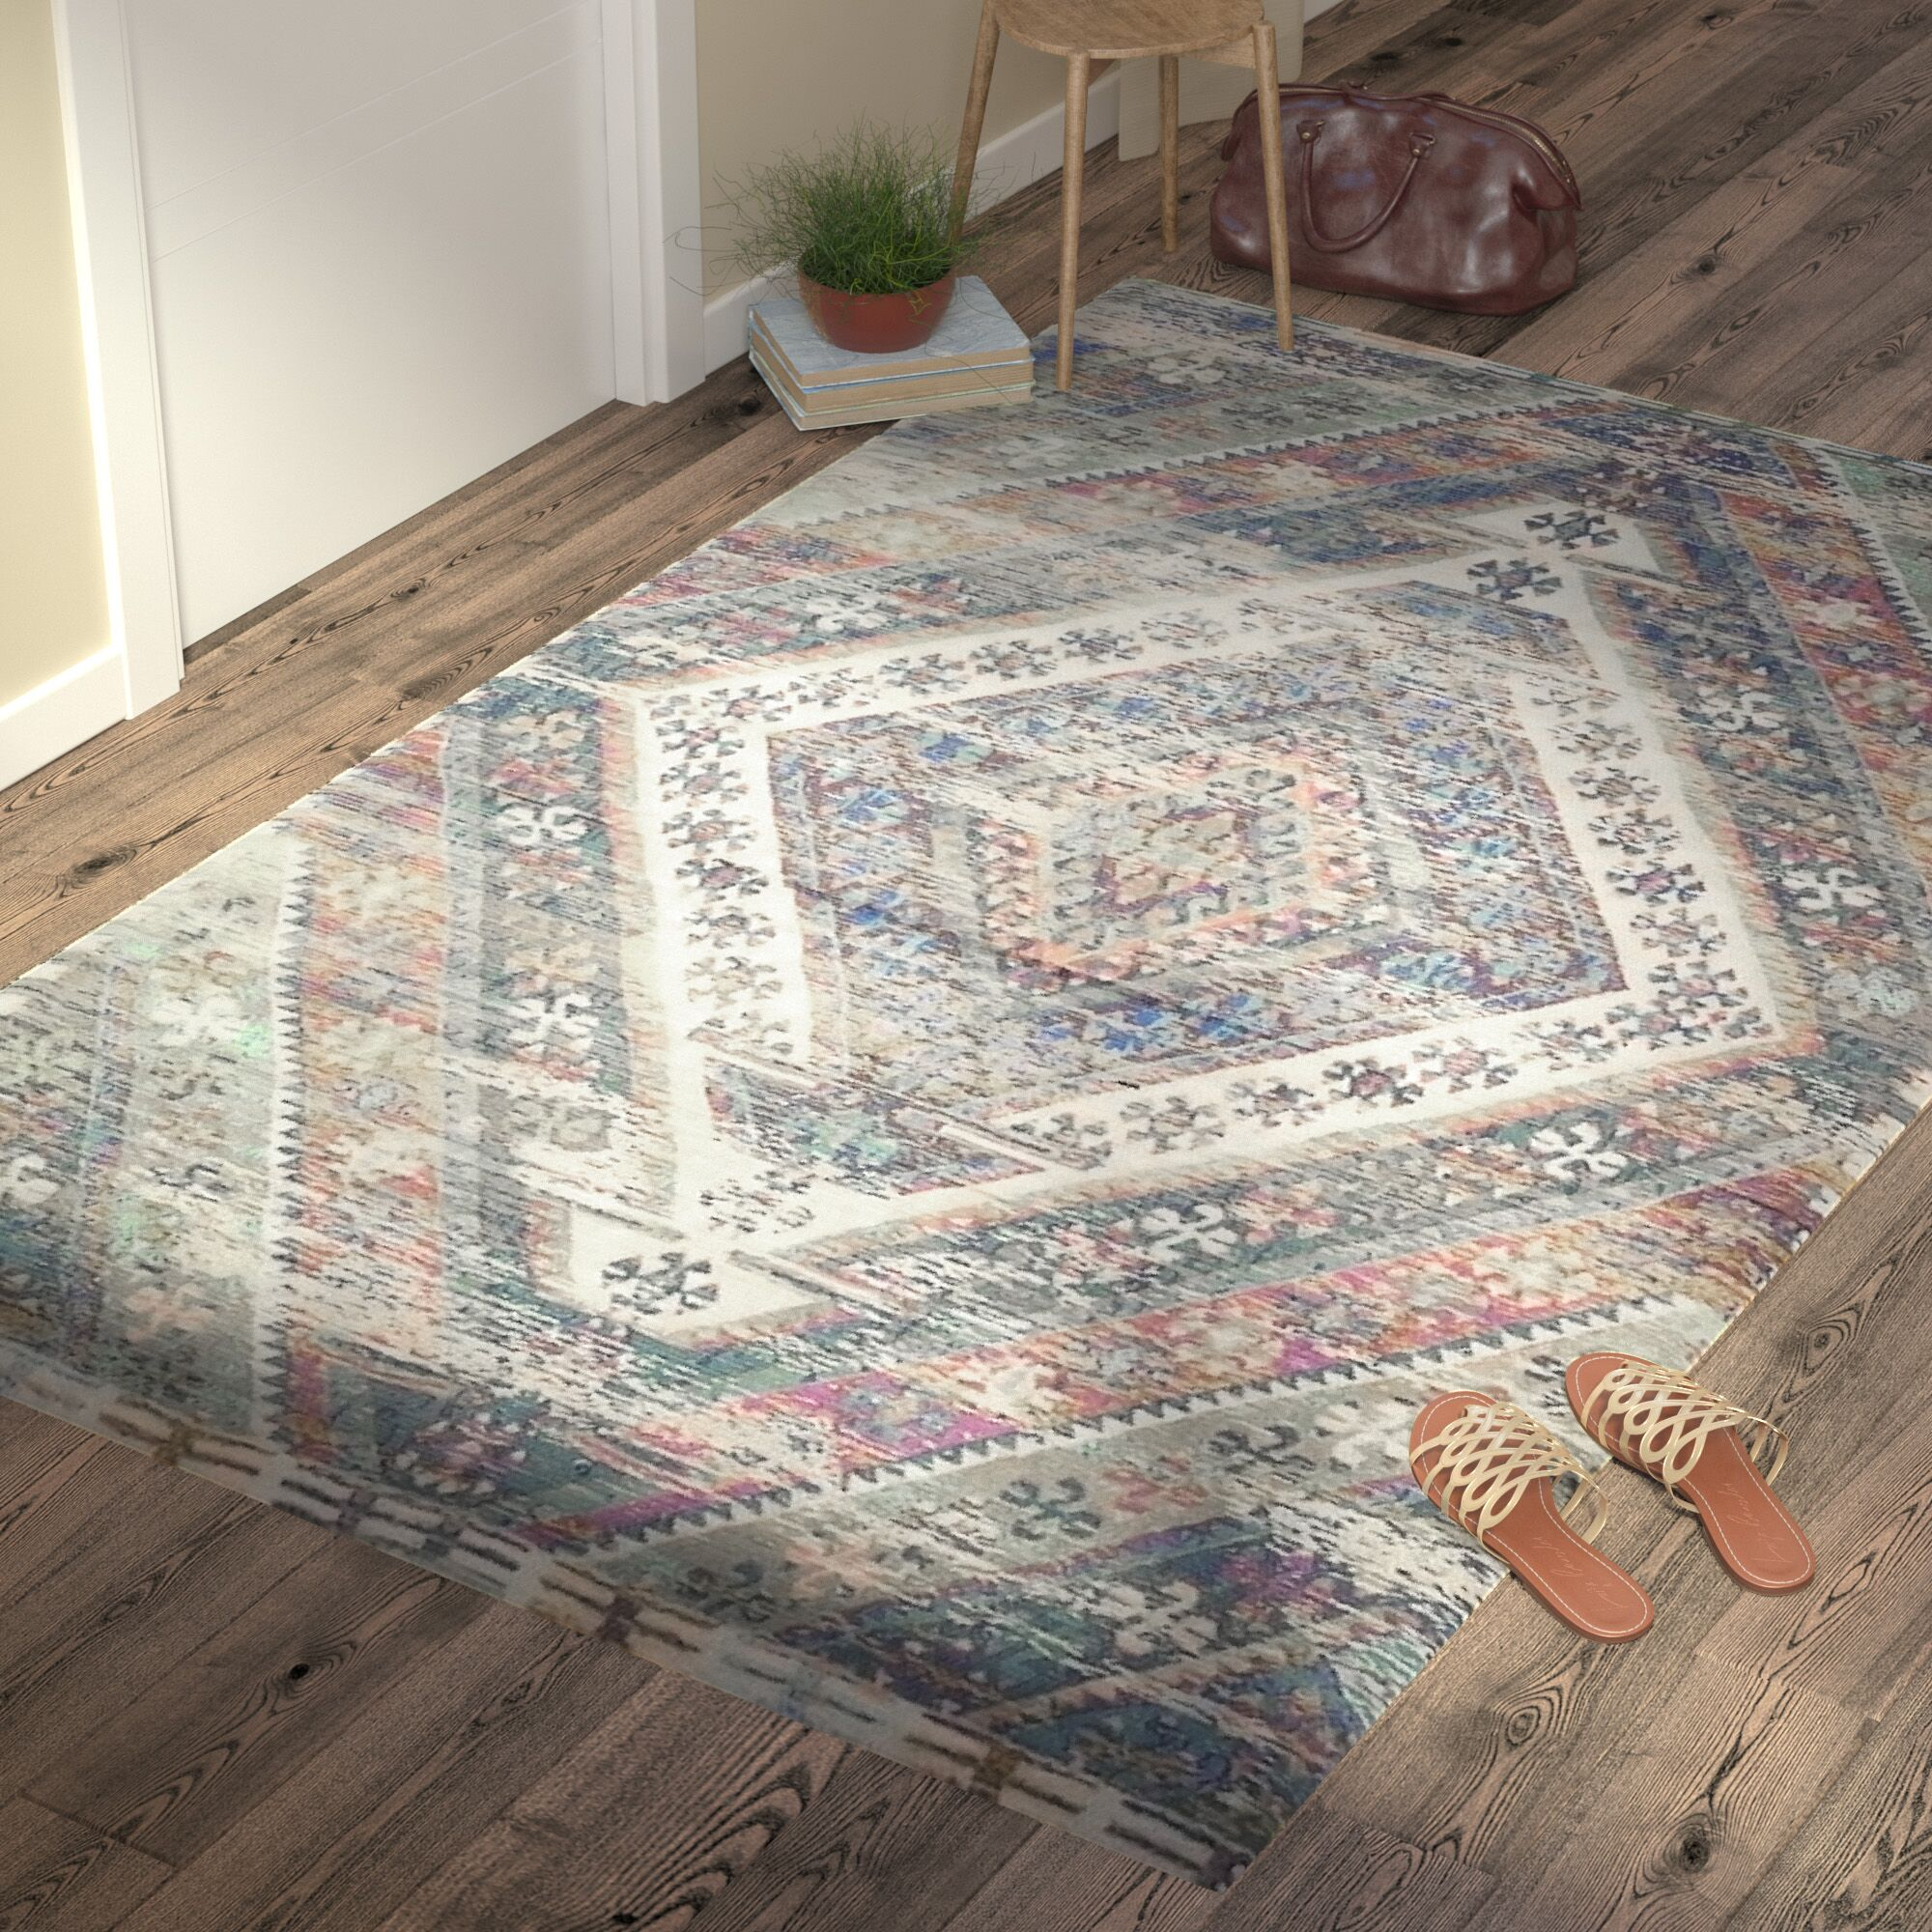 Amanda Hand-Loomed Royal Blue/Fuchsia Area Rug Rug Size: Runner 2'3